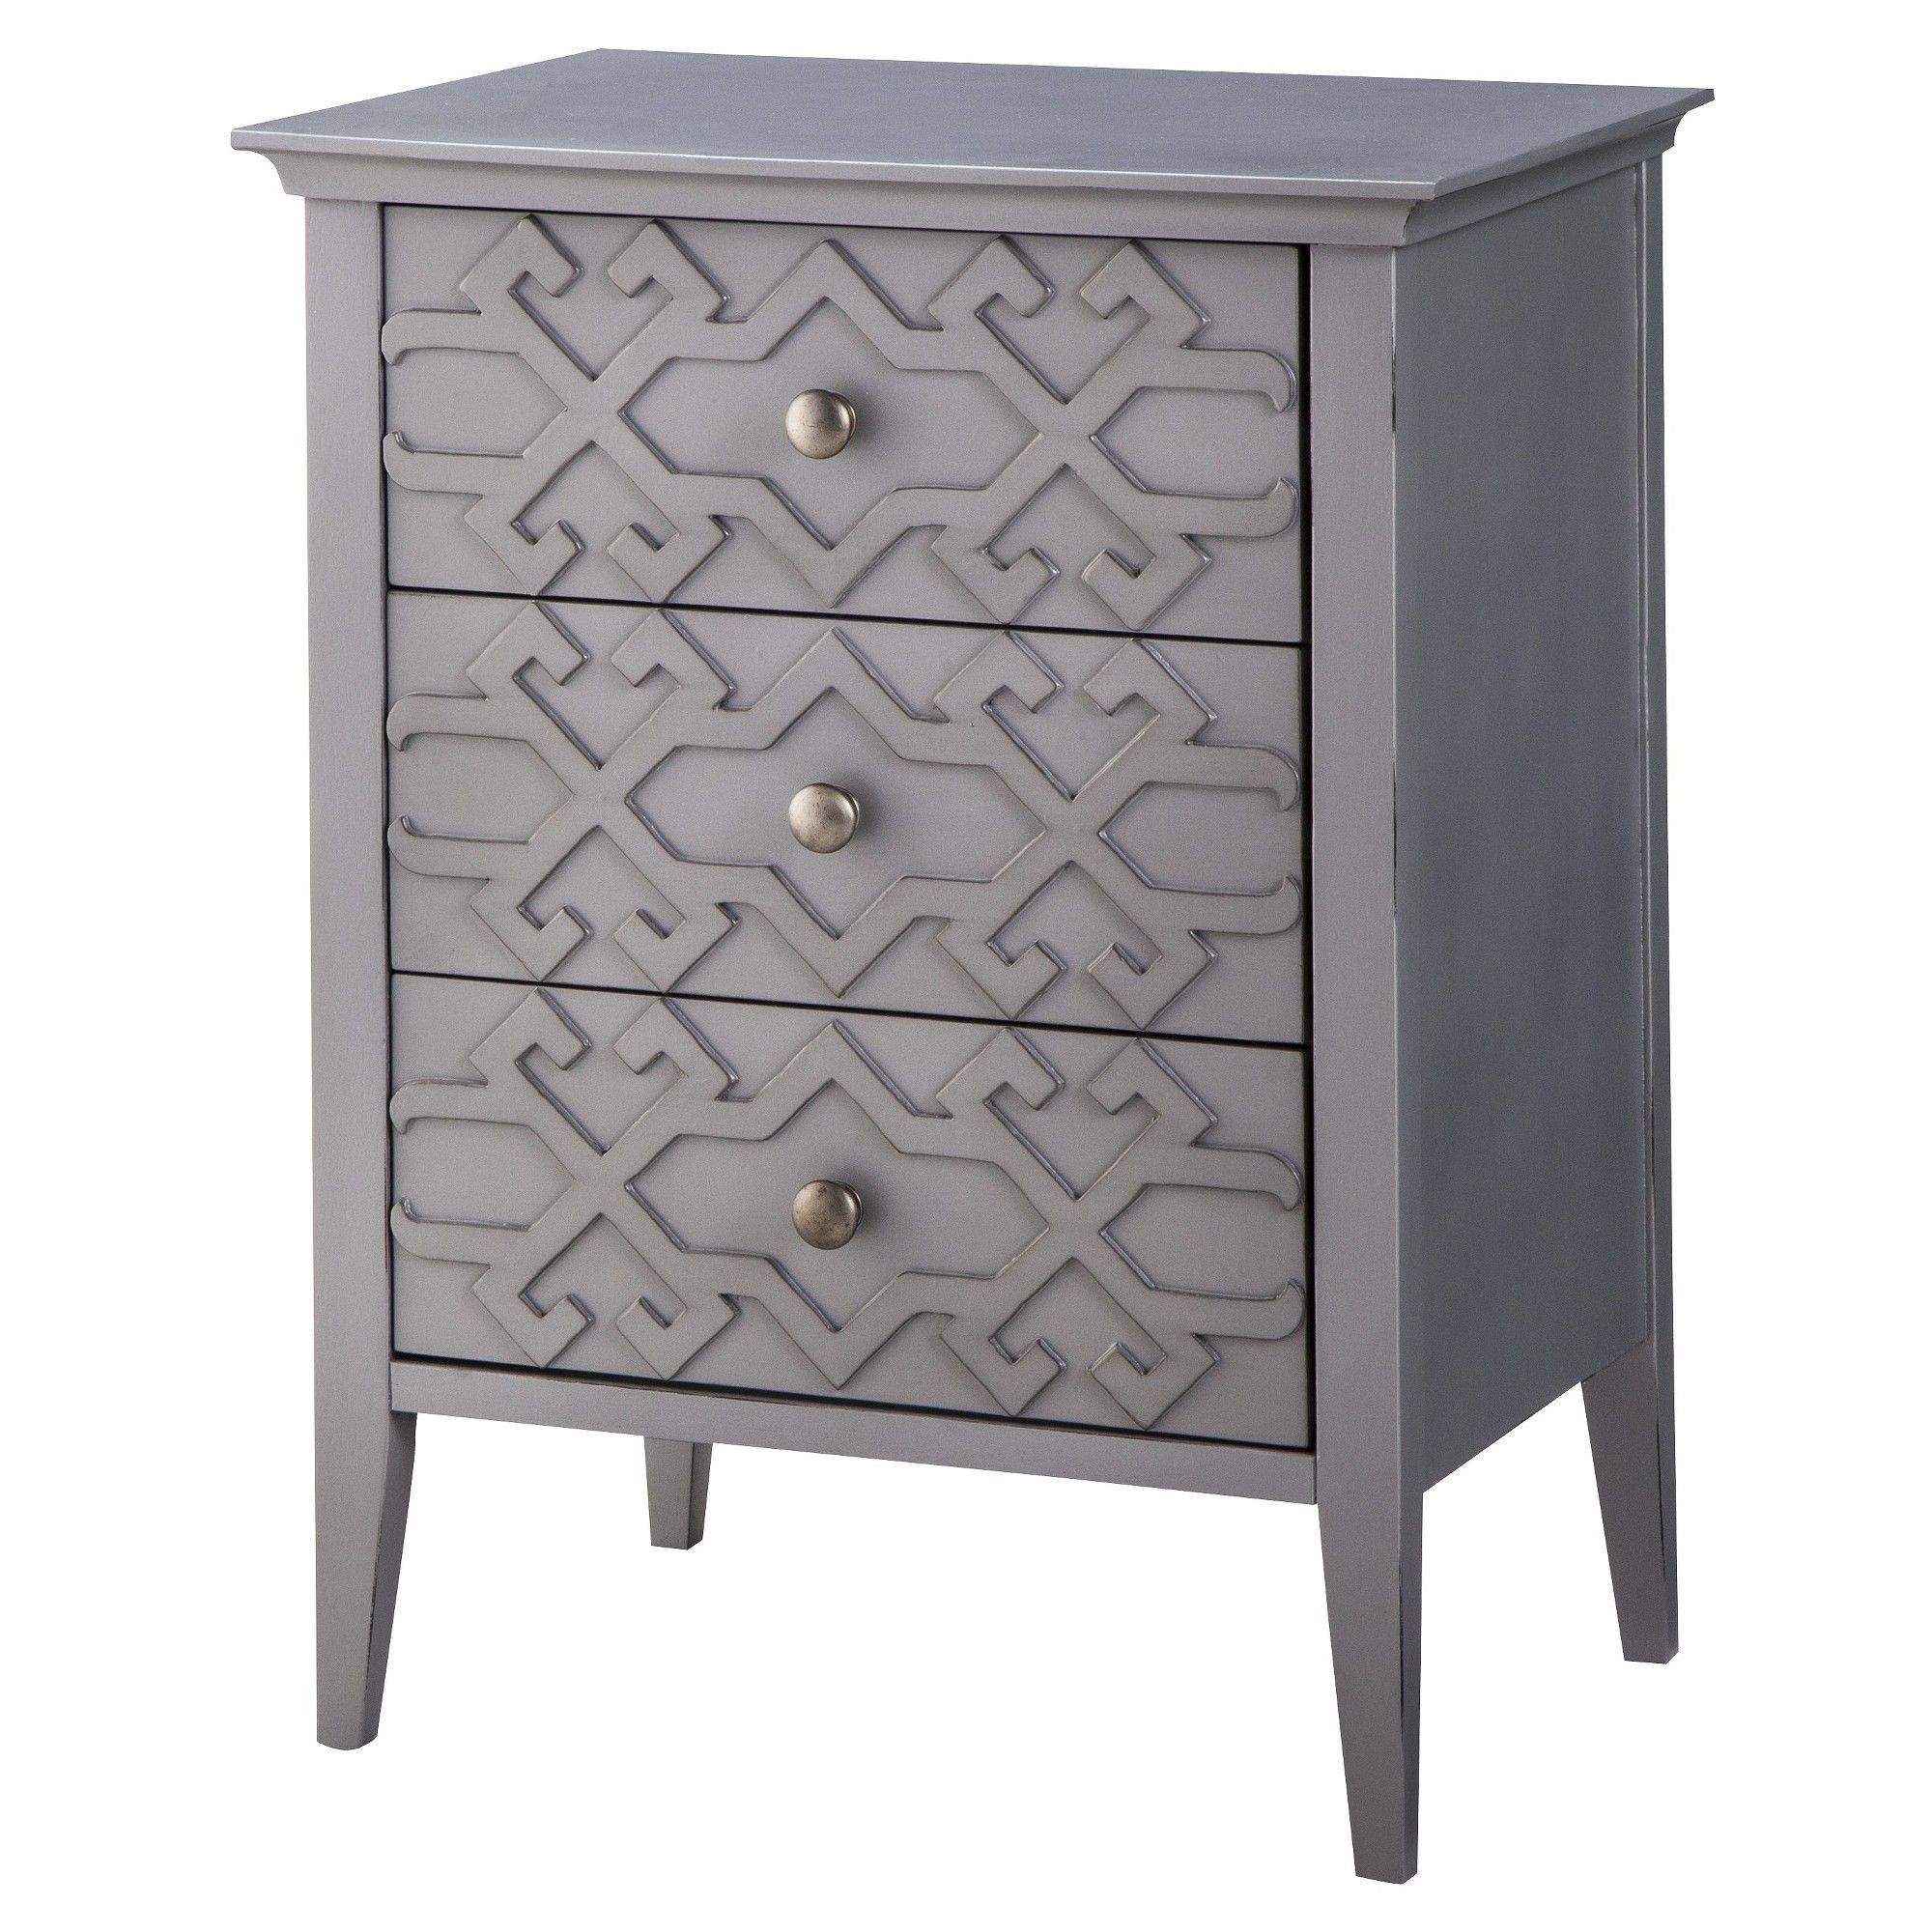 fretwork accent table threshold diy teal bedroom and living room garden furniture chairs hall console round center for nautical dining wicker drum foyer mirror covers patio beer